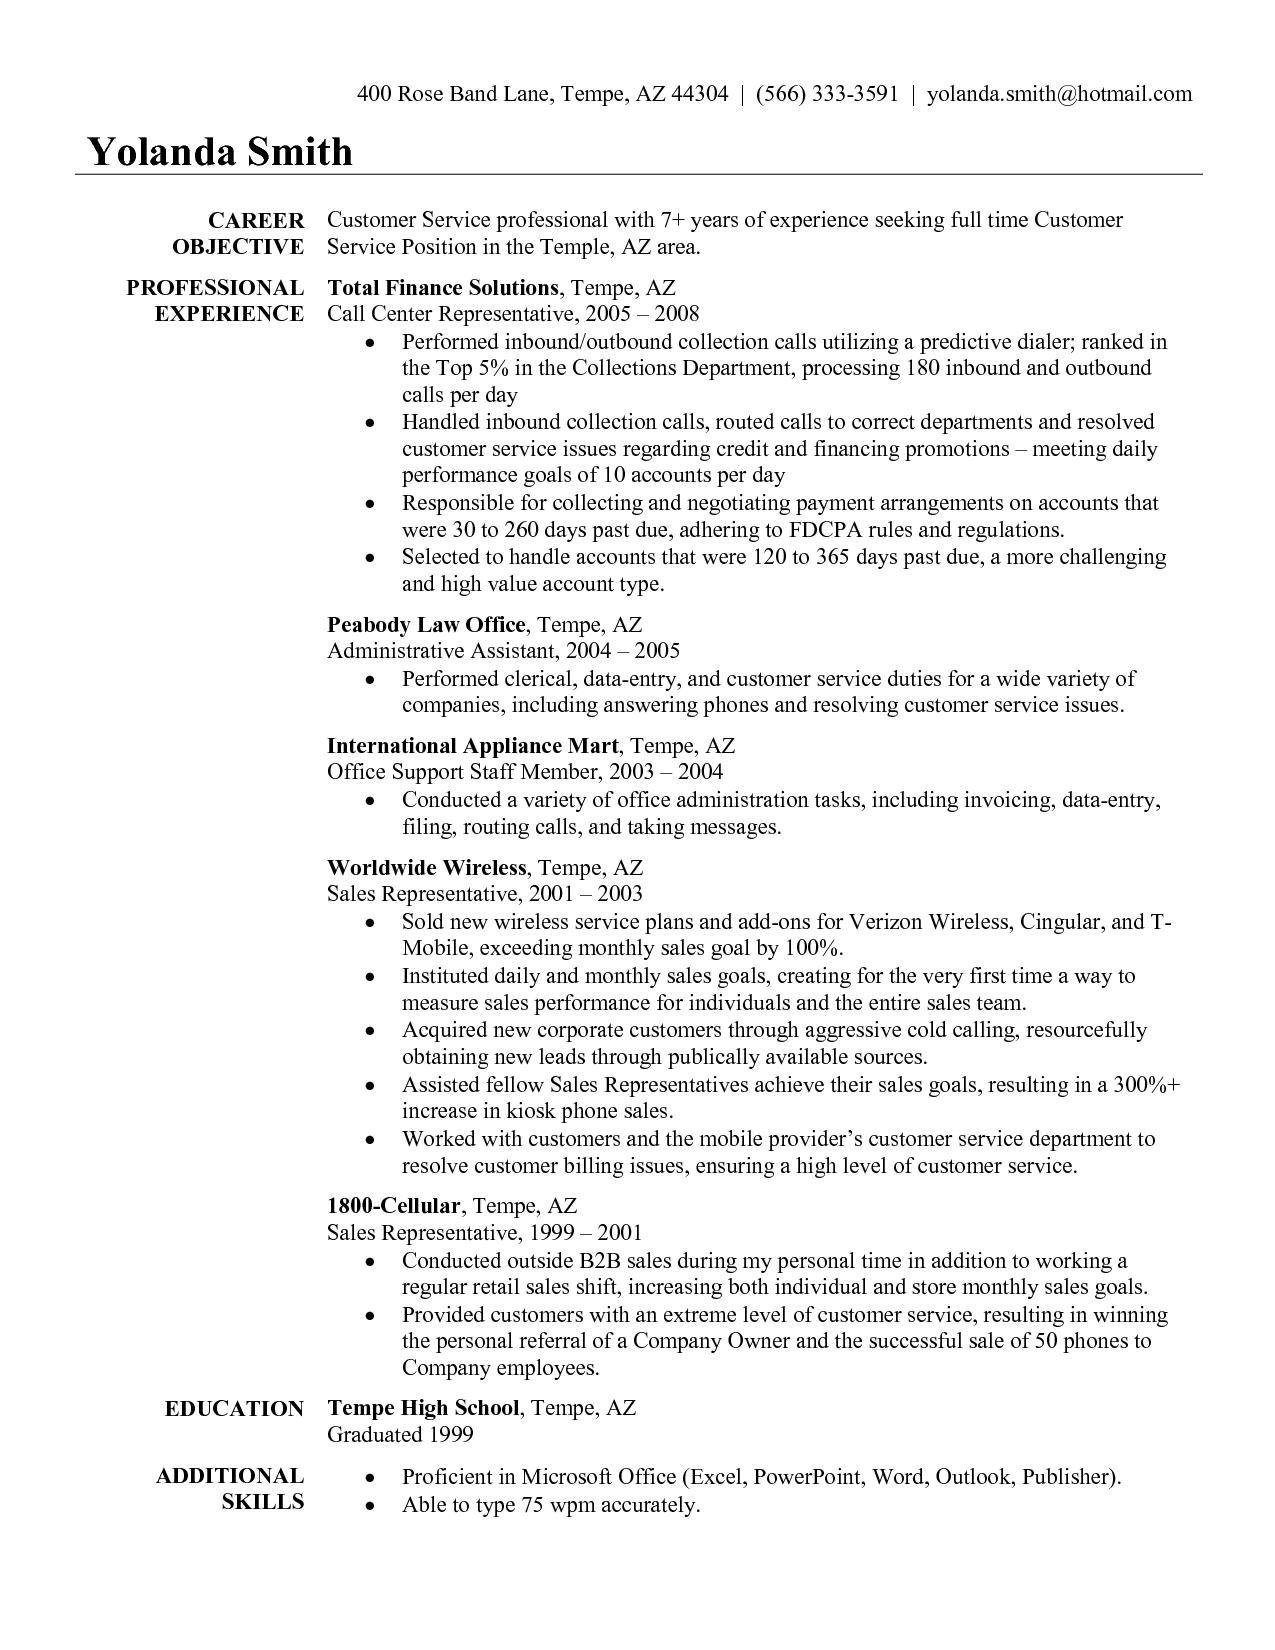 customer service manager resume example with professional profile and skills in software or relevant work experience